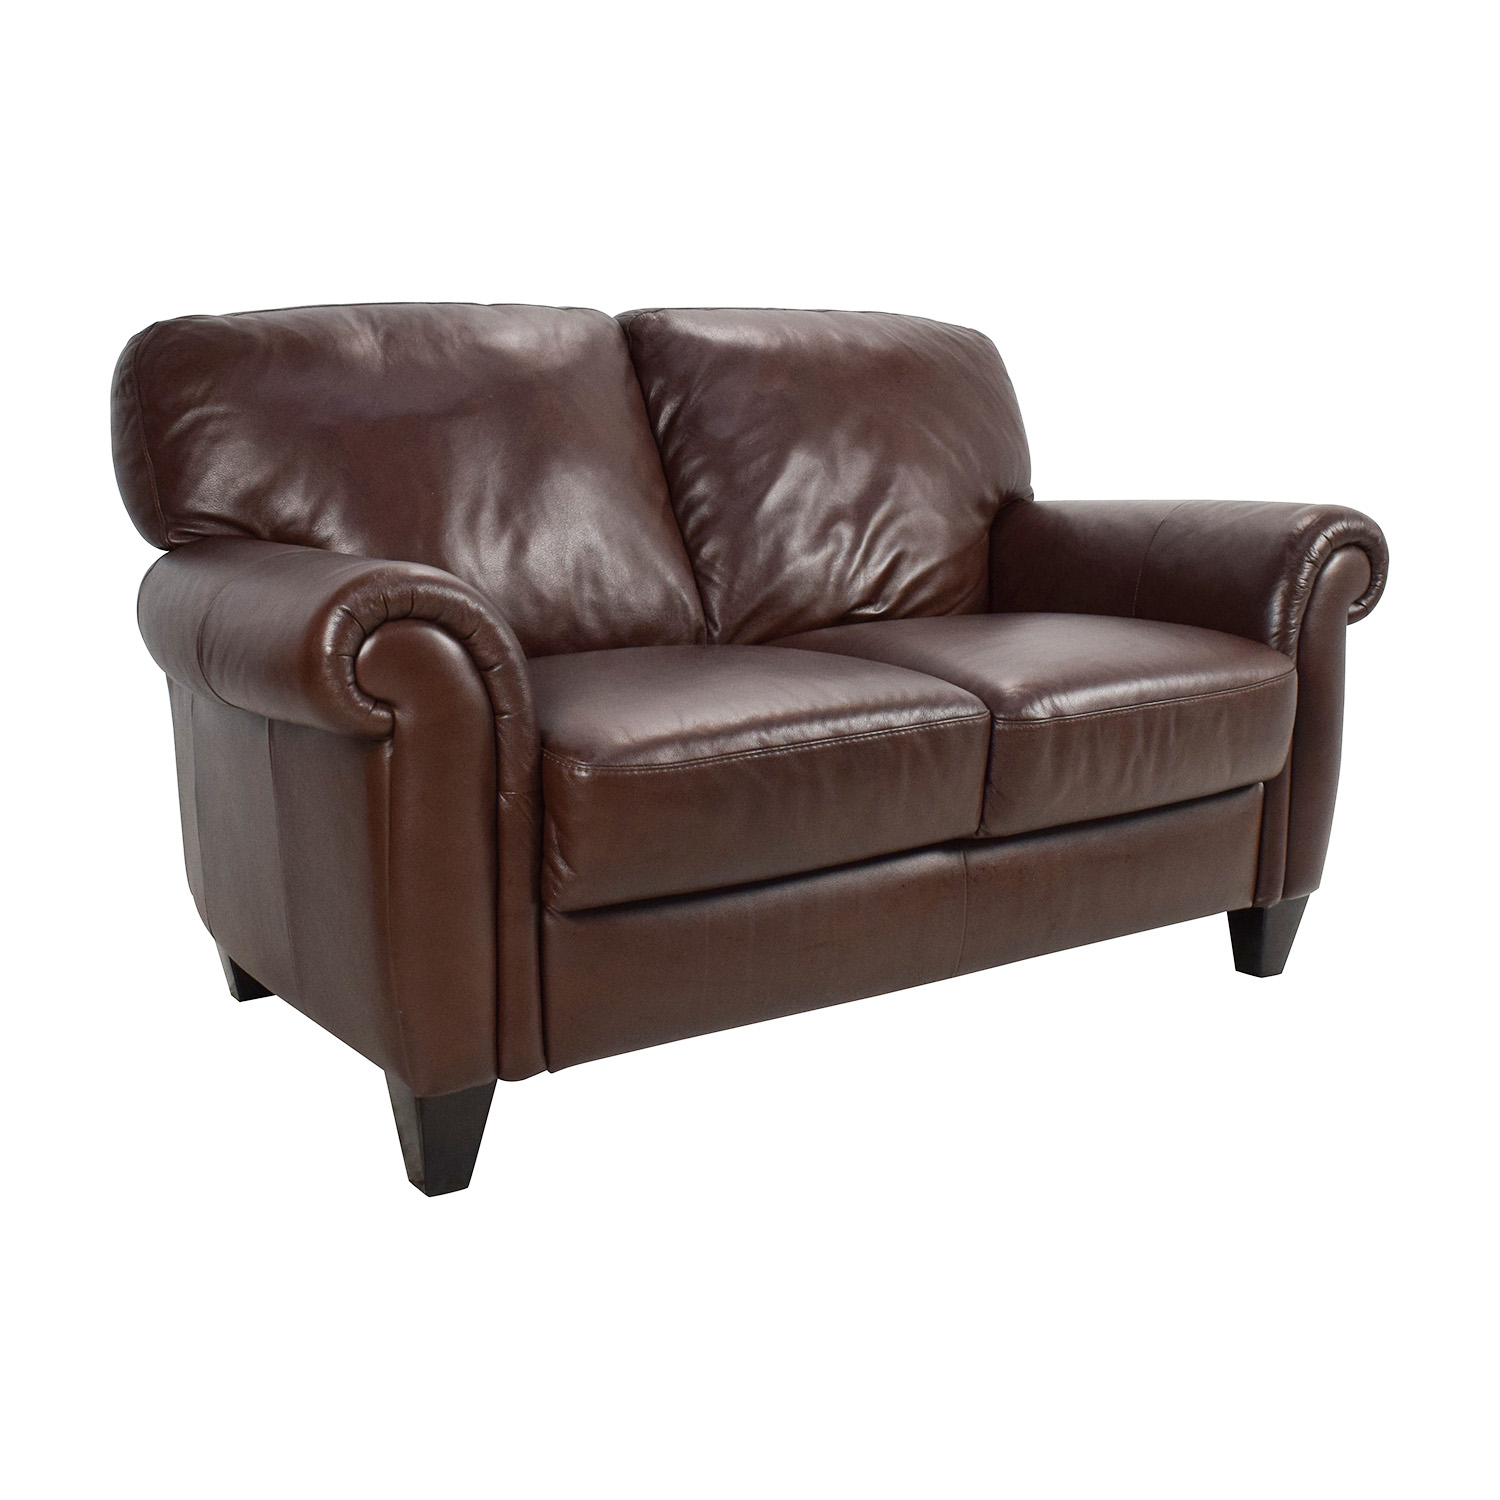 50 off brown roll arm leather loveseat sofas Couches and loveseats